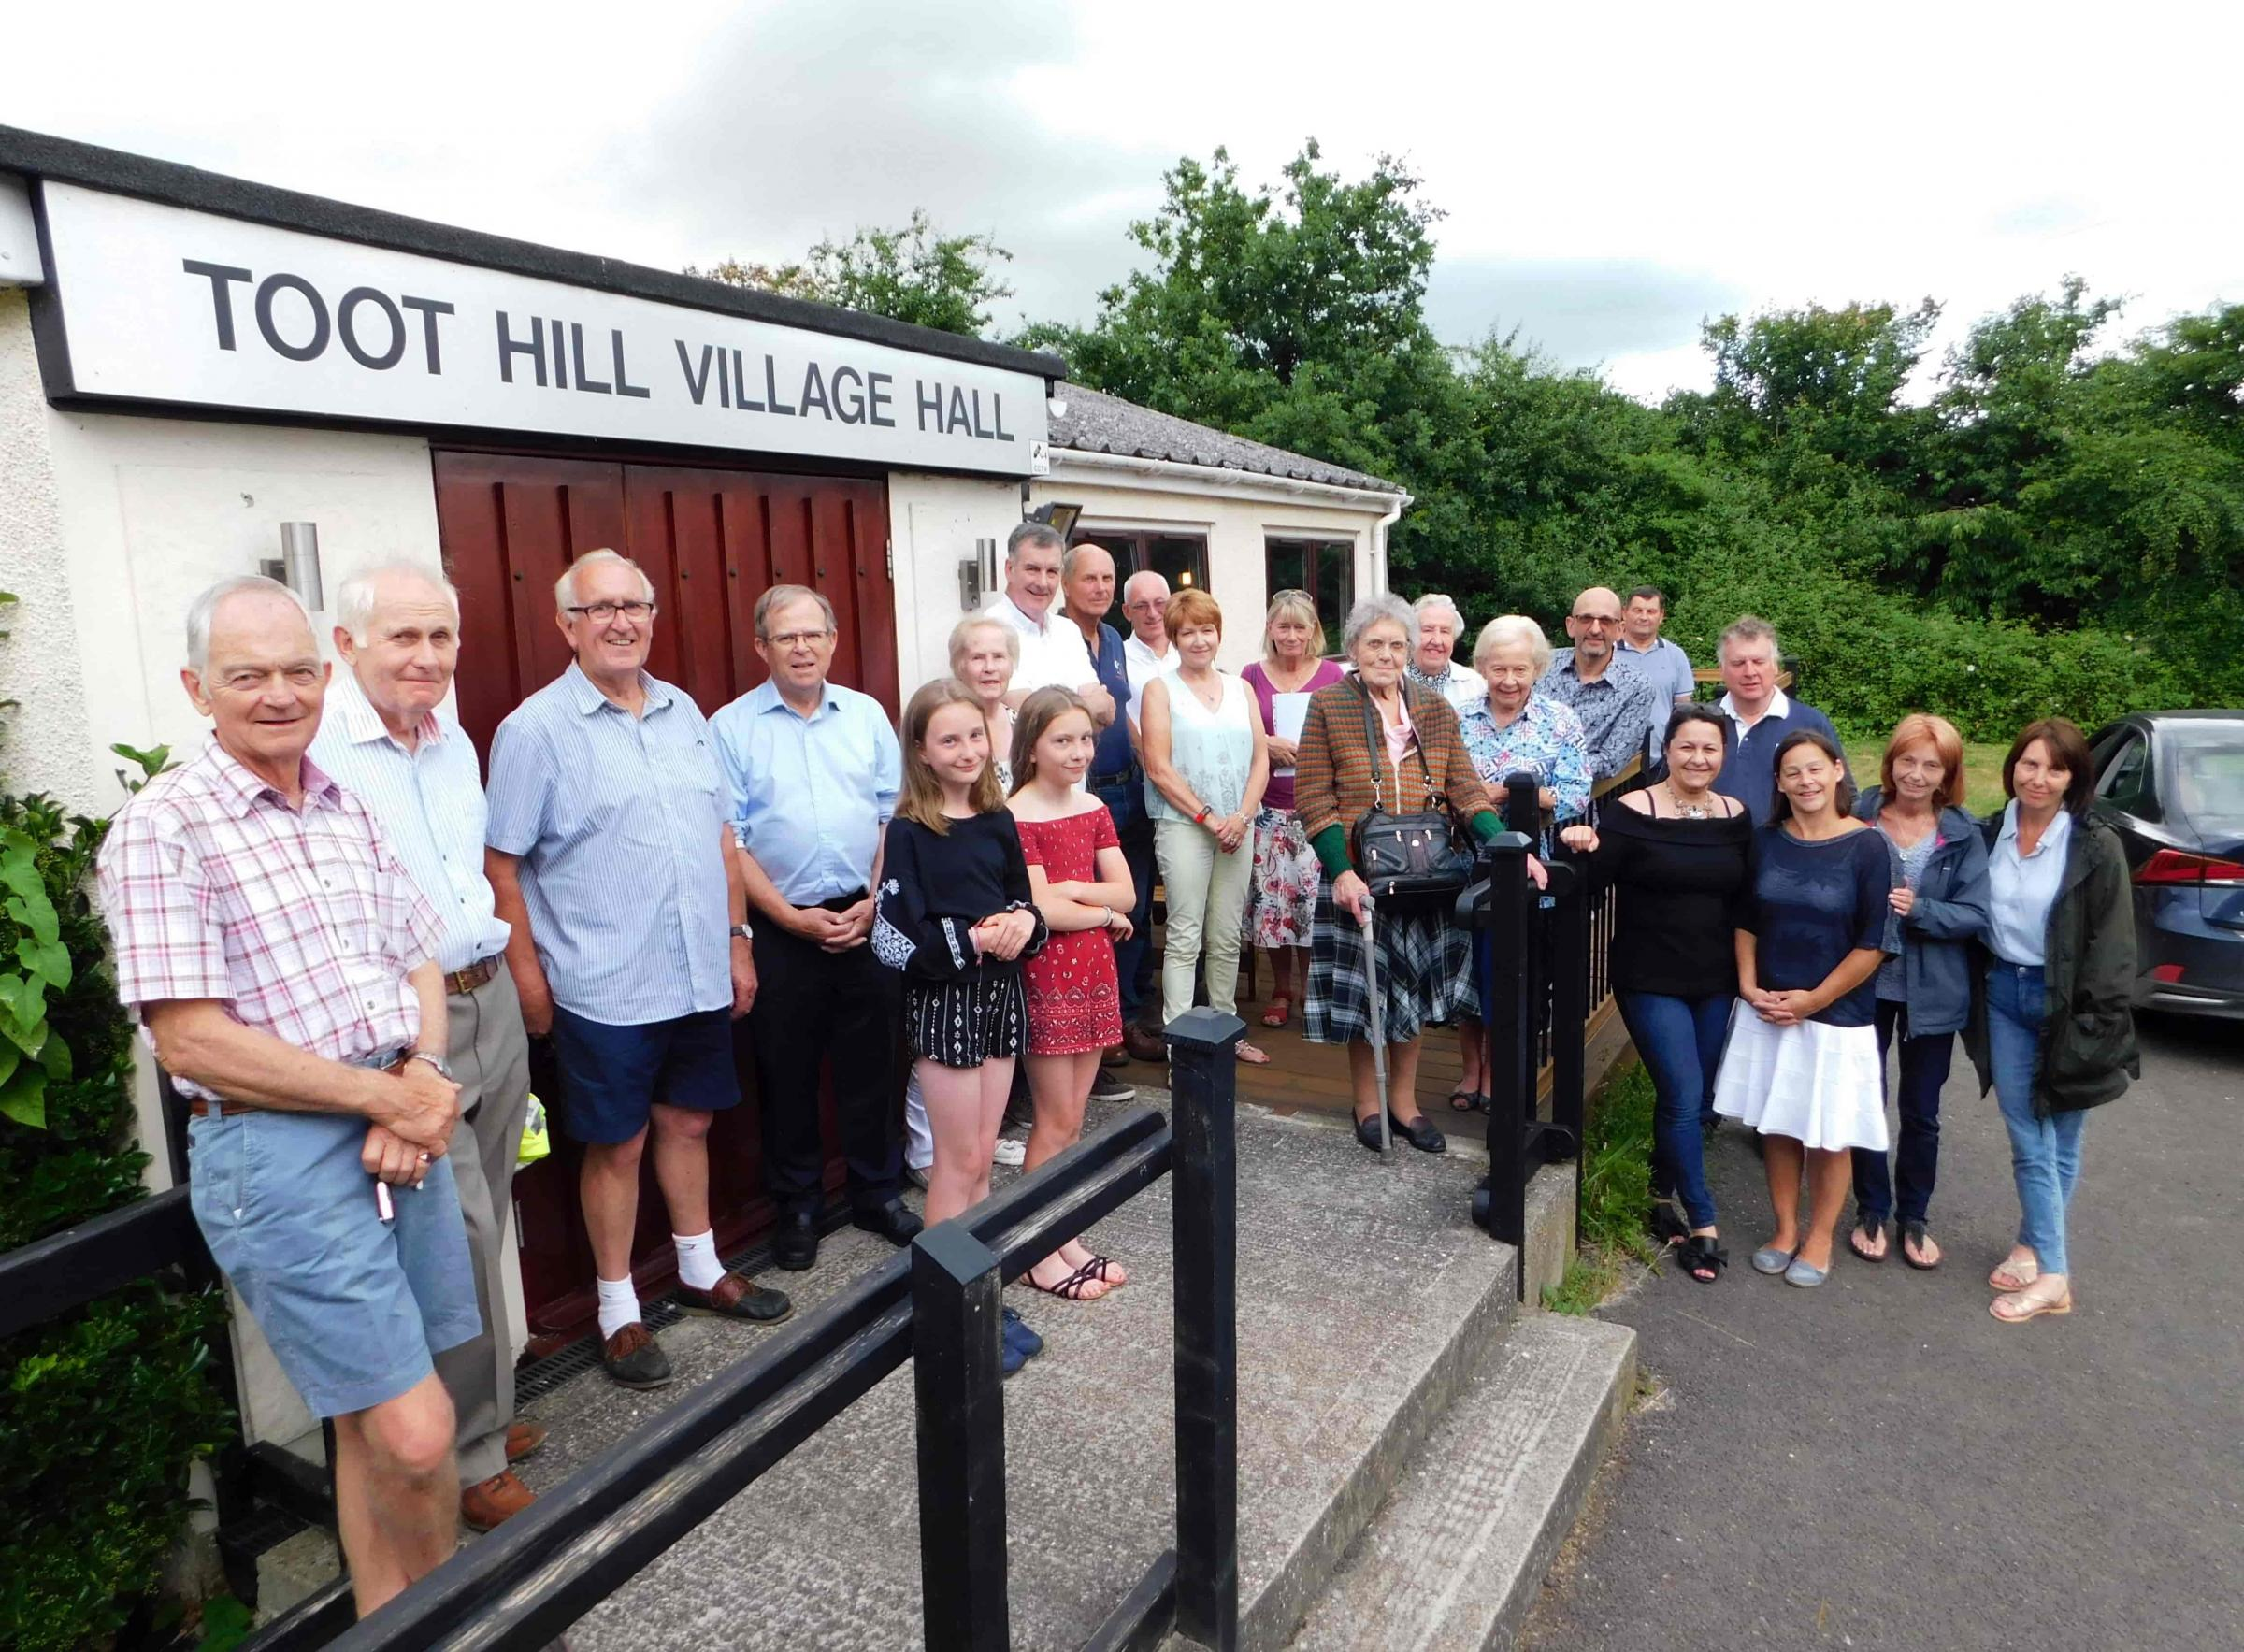 Celebrating the re-opening of Toot Hill Village Hall